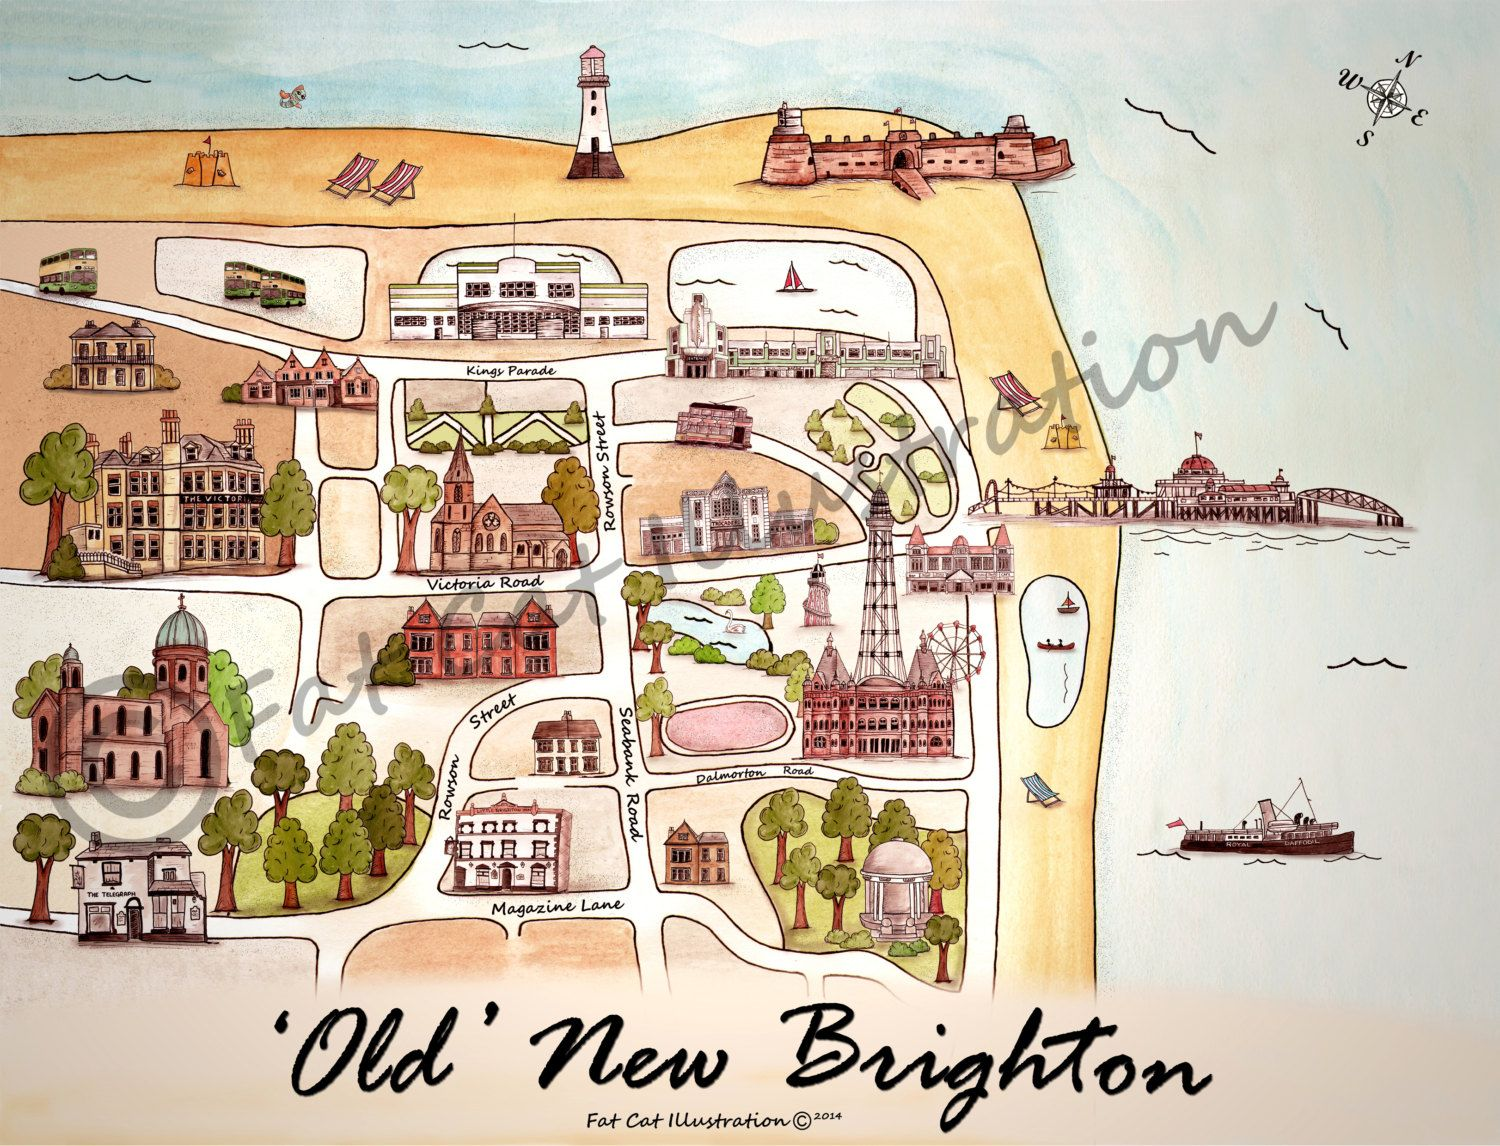 New brighton illustrated map old new brighton new brighton print new brighton illustrated map old new brighton new brighton print gift gumiabroncs Images